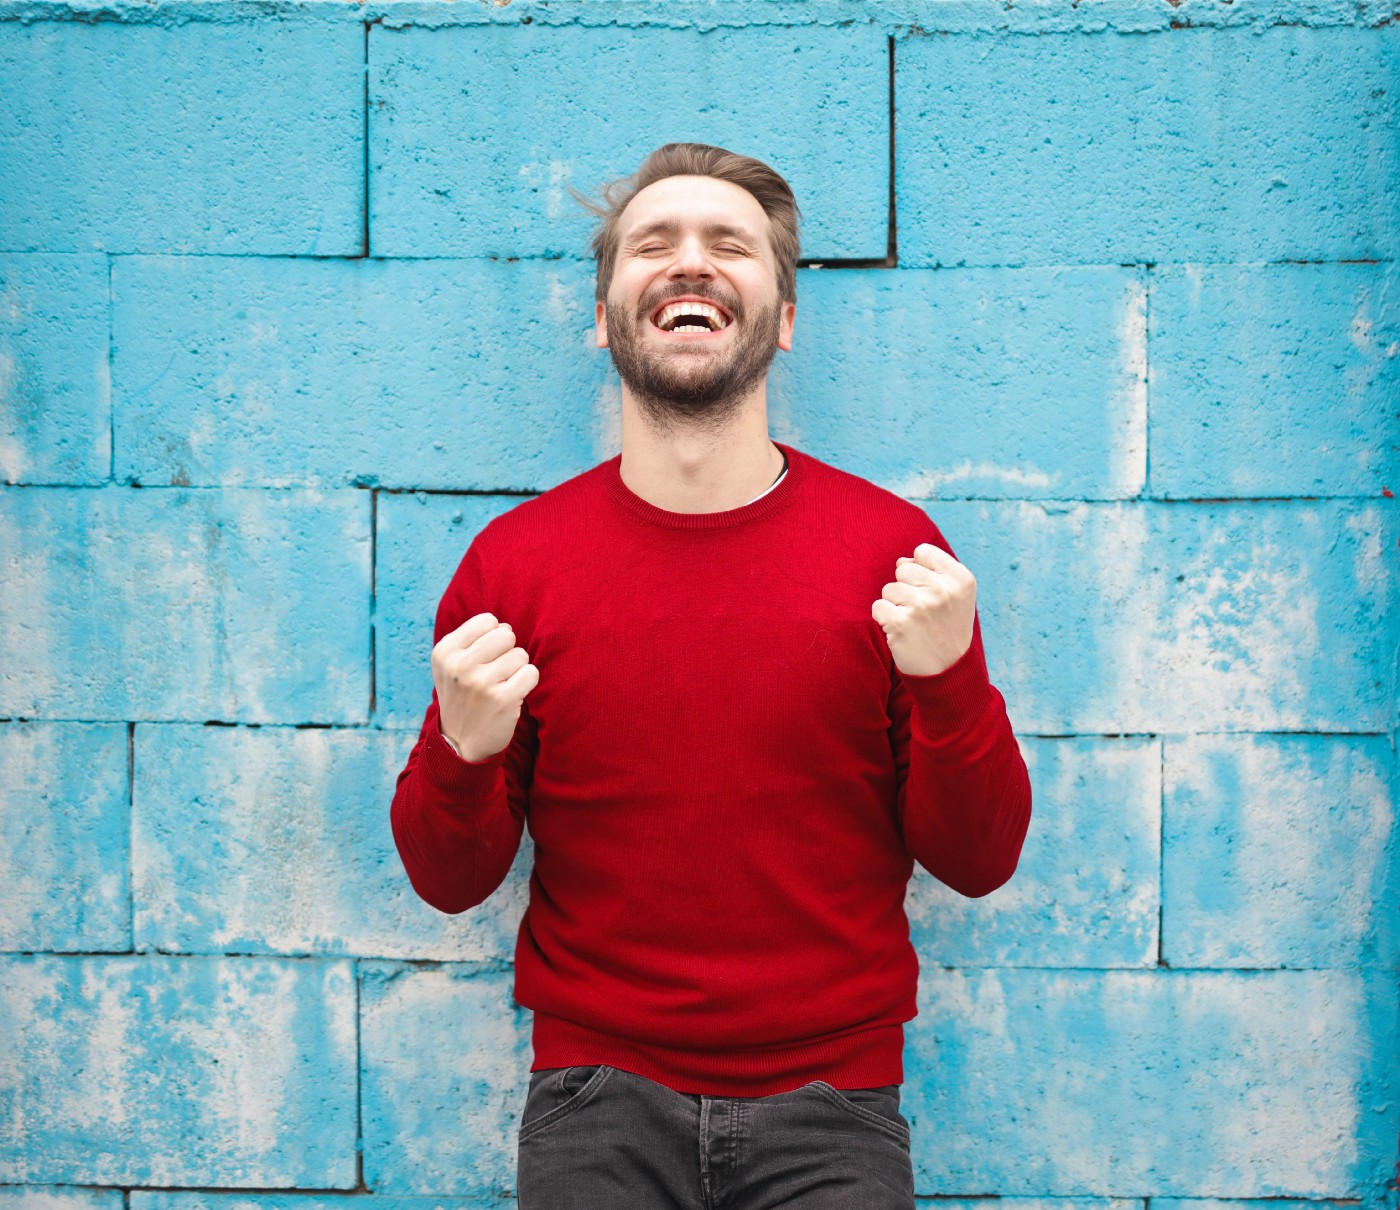 Man in red shirt cheers jubilantly in front of a blue brick wall